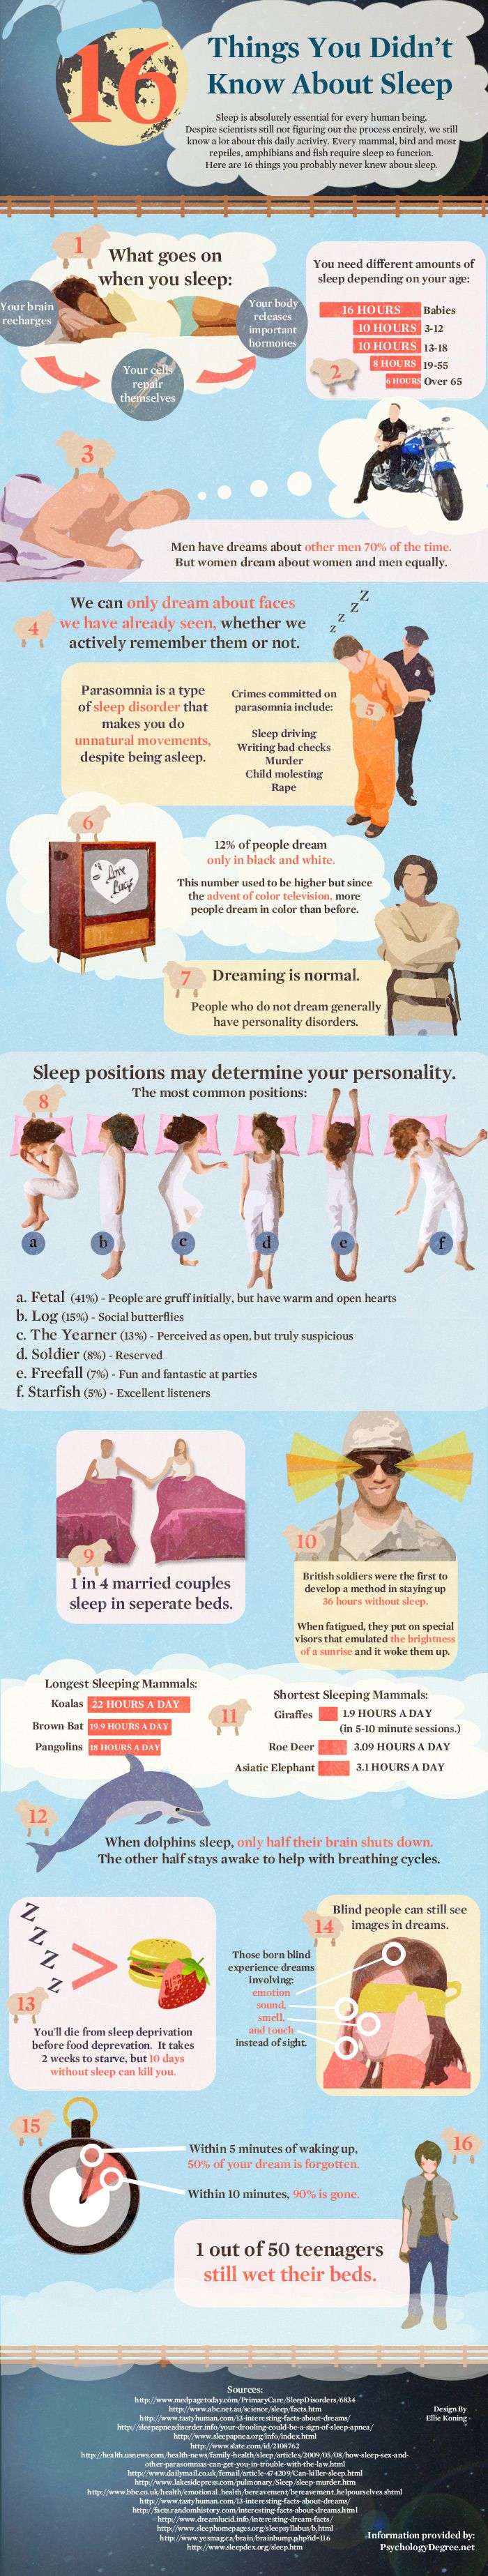 Sleep psychology facts